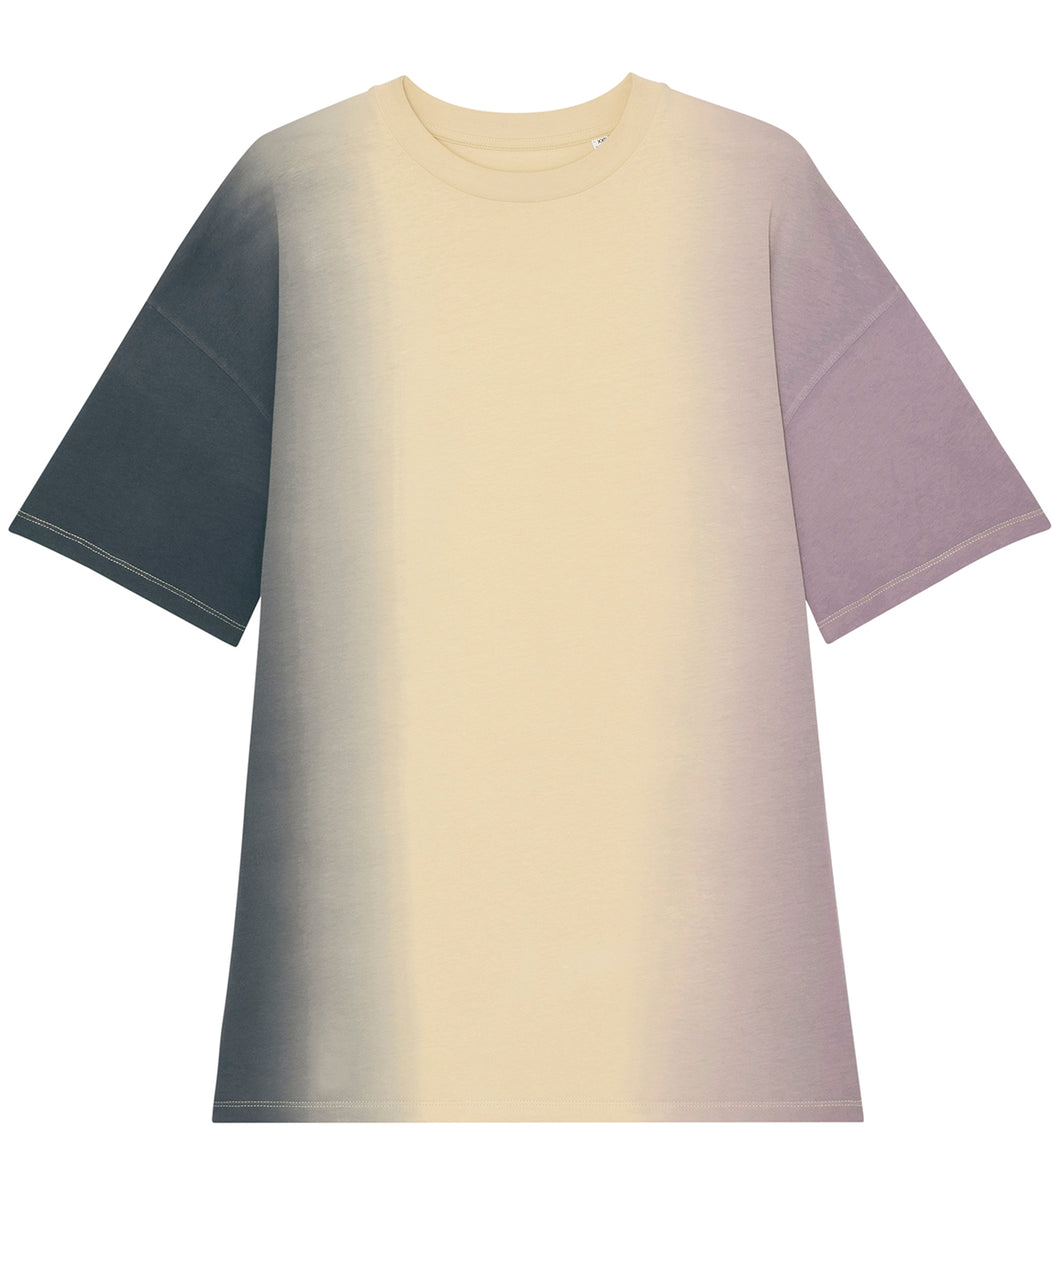 Twister Dip Dye, The women's dip dyed oversized t-shirt dress